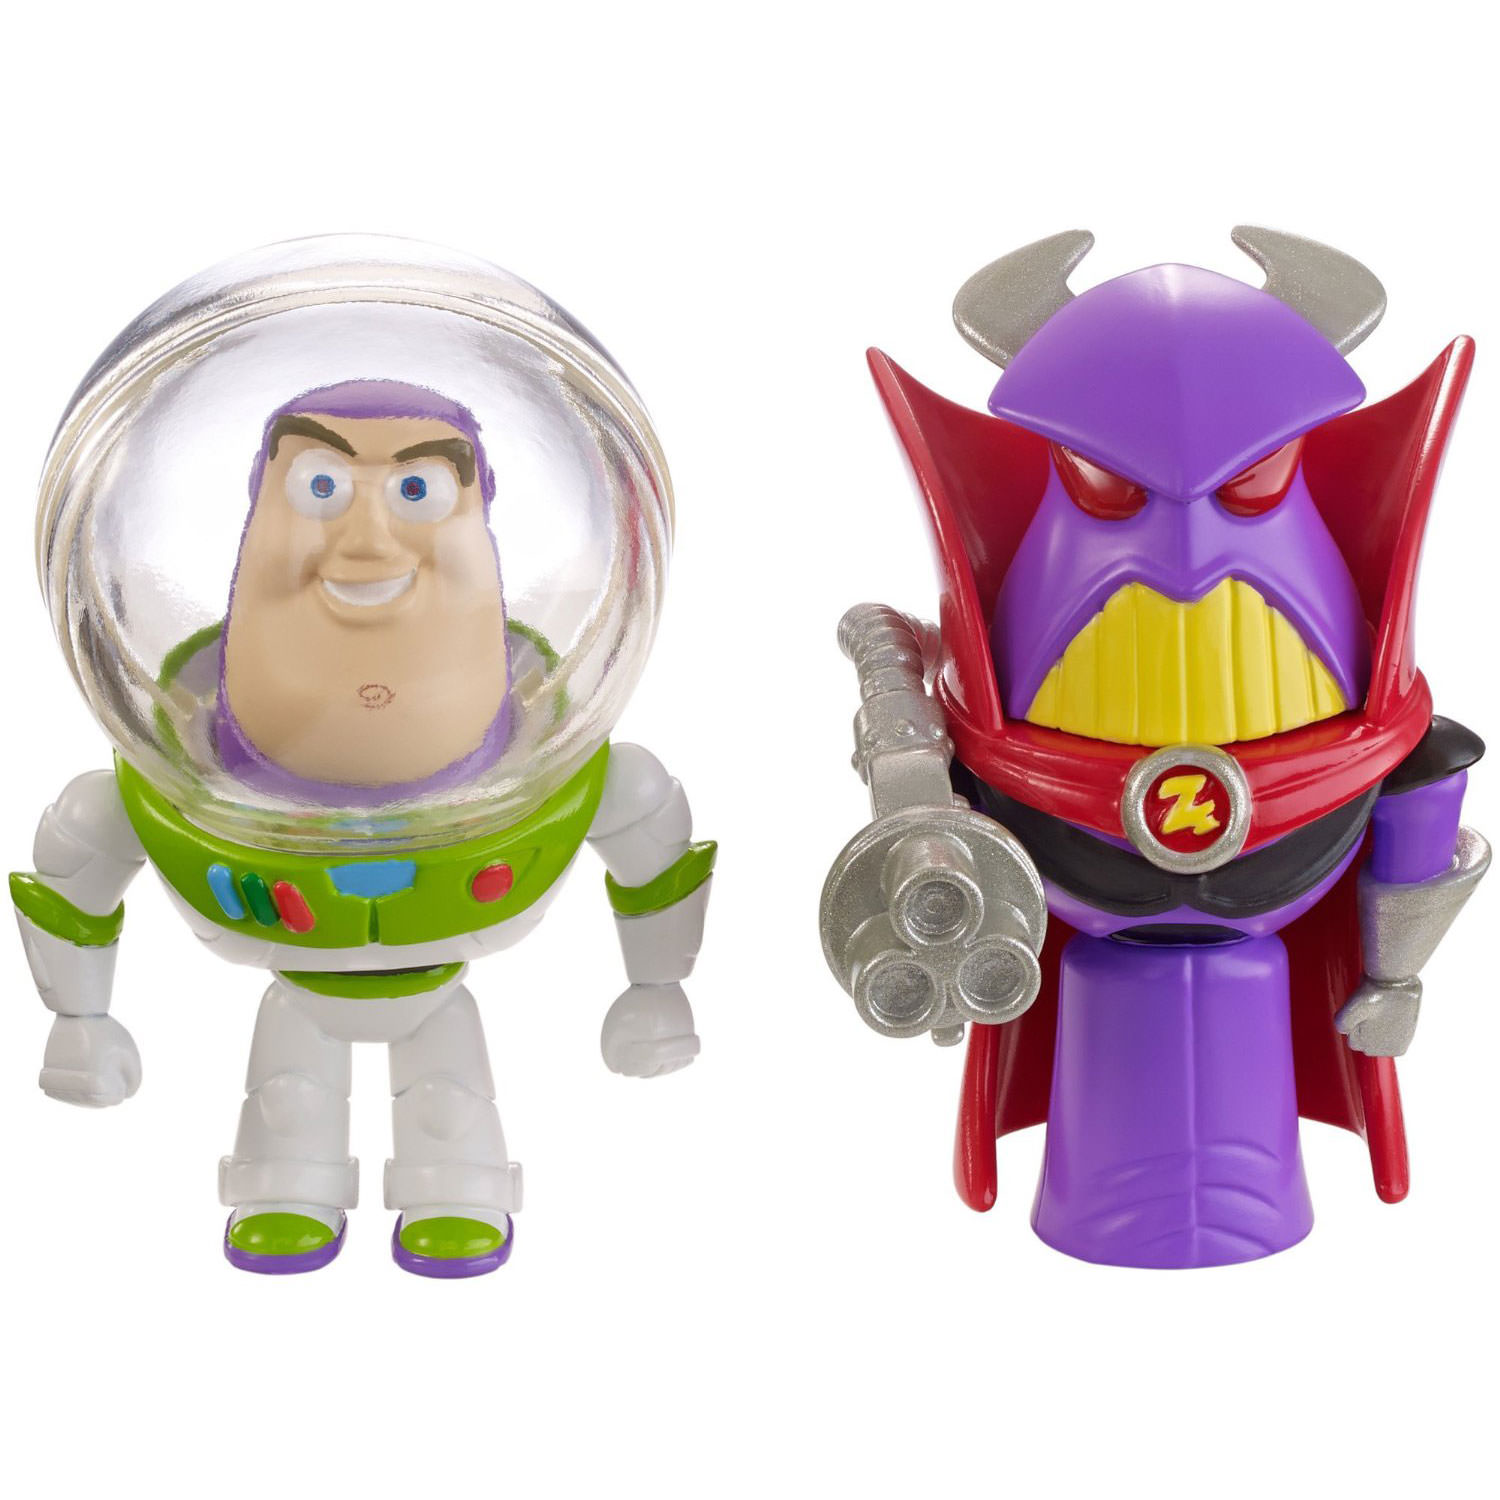 Toy Story Figures : Disney pixar toy story quot figure buzz zurg pack at